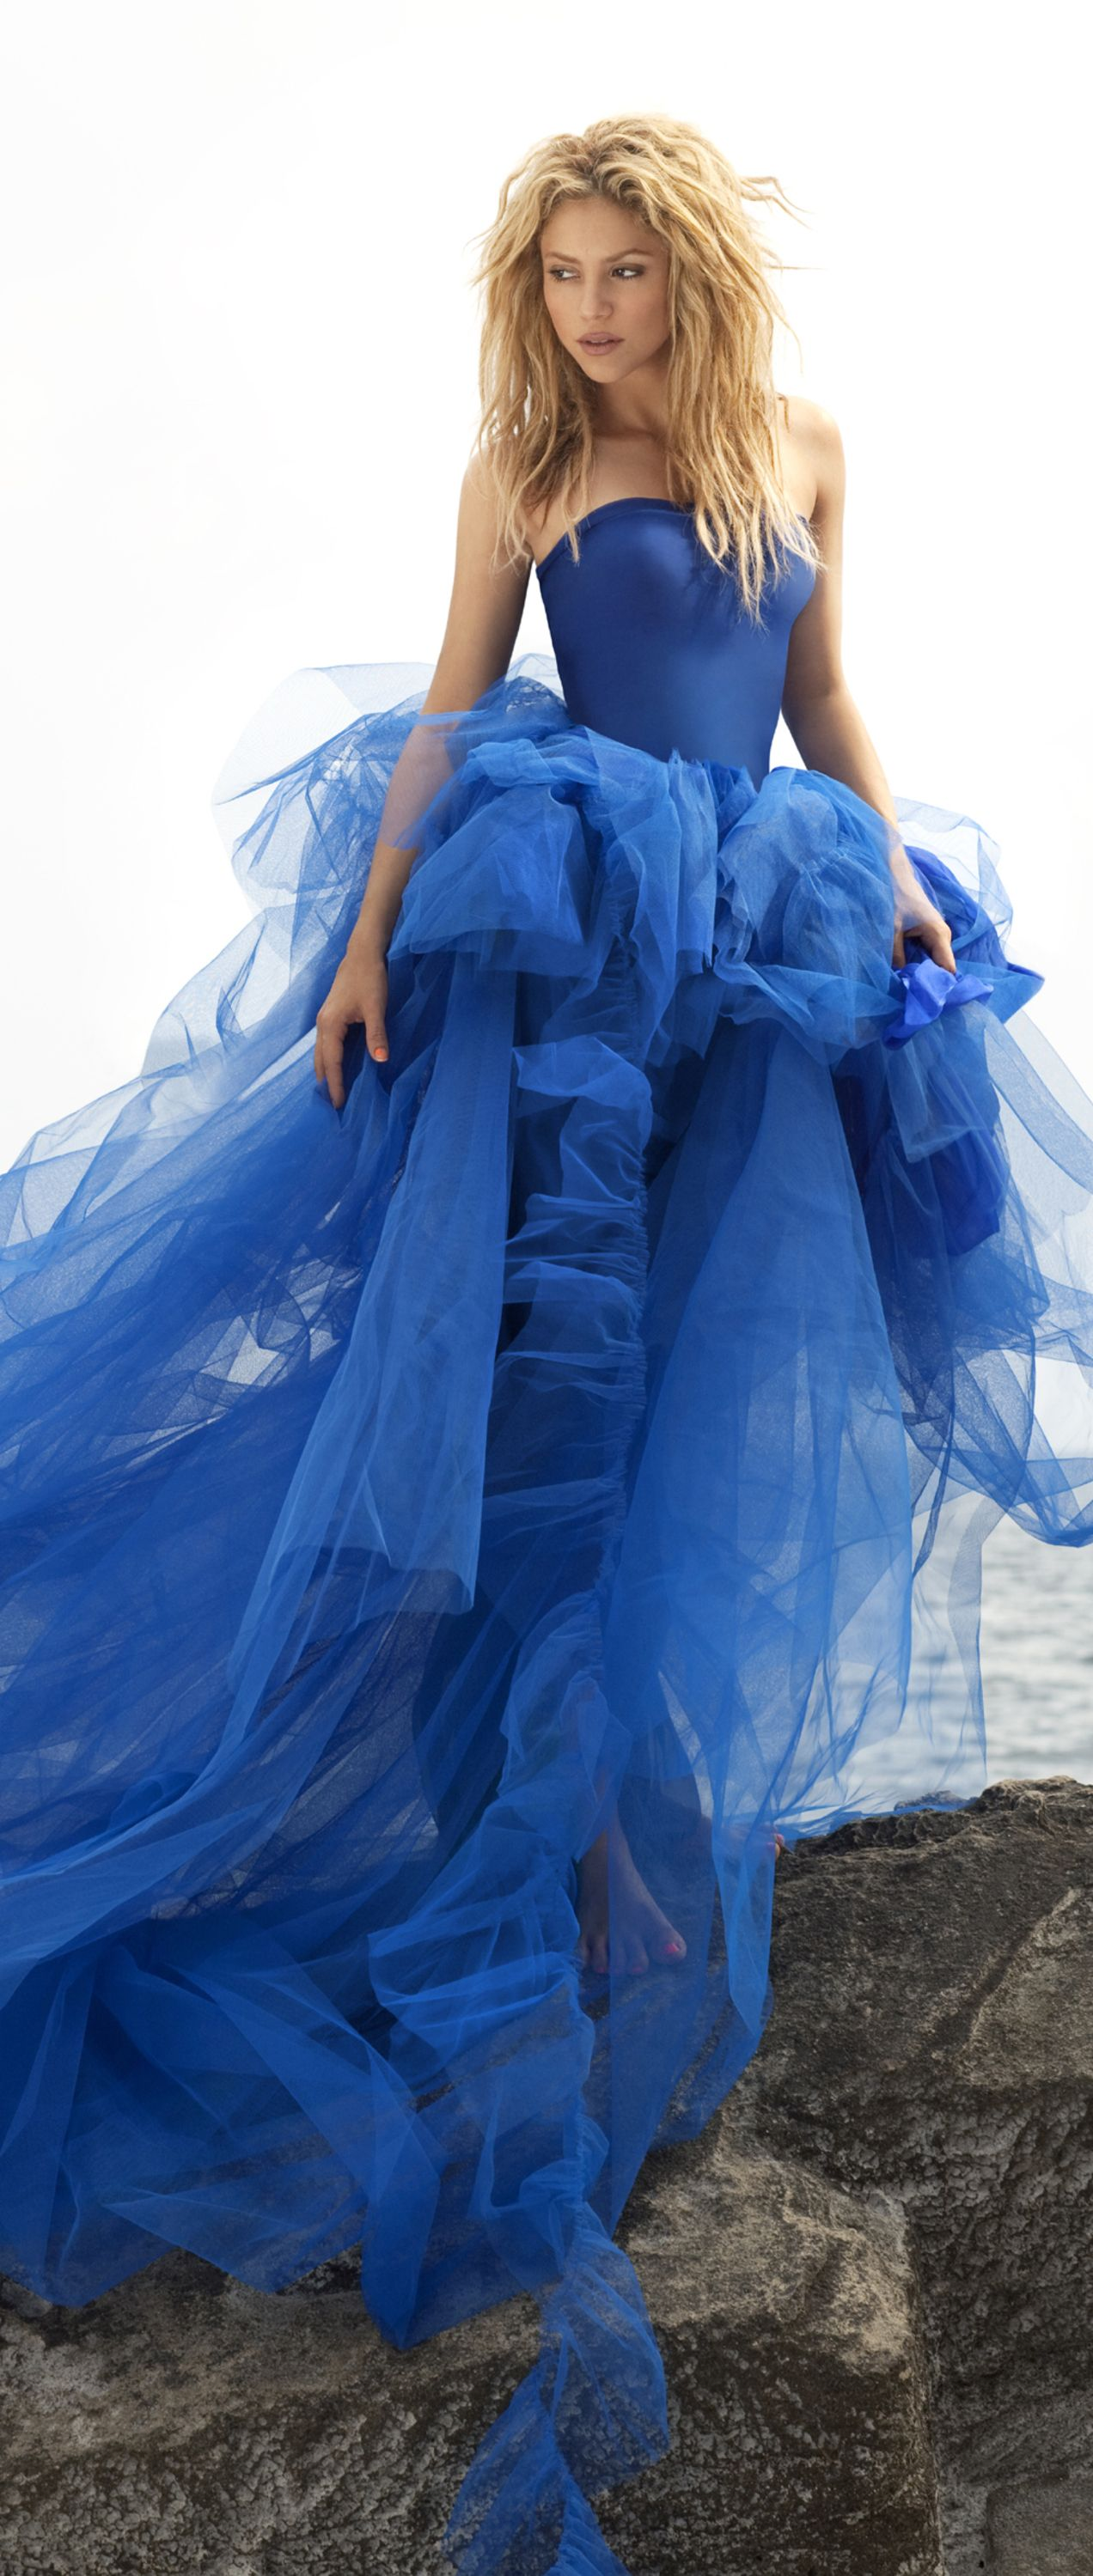 Pin by stacey on sheus so fancy pinterest color blue iconic